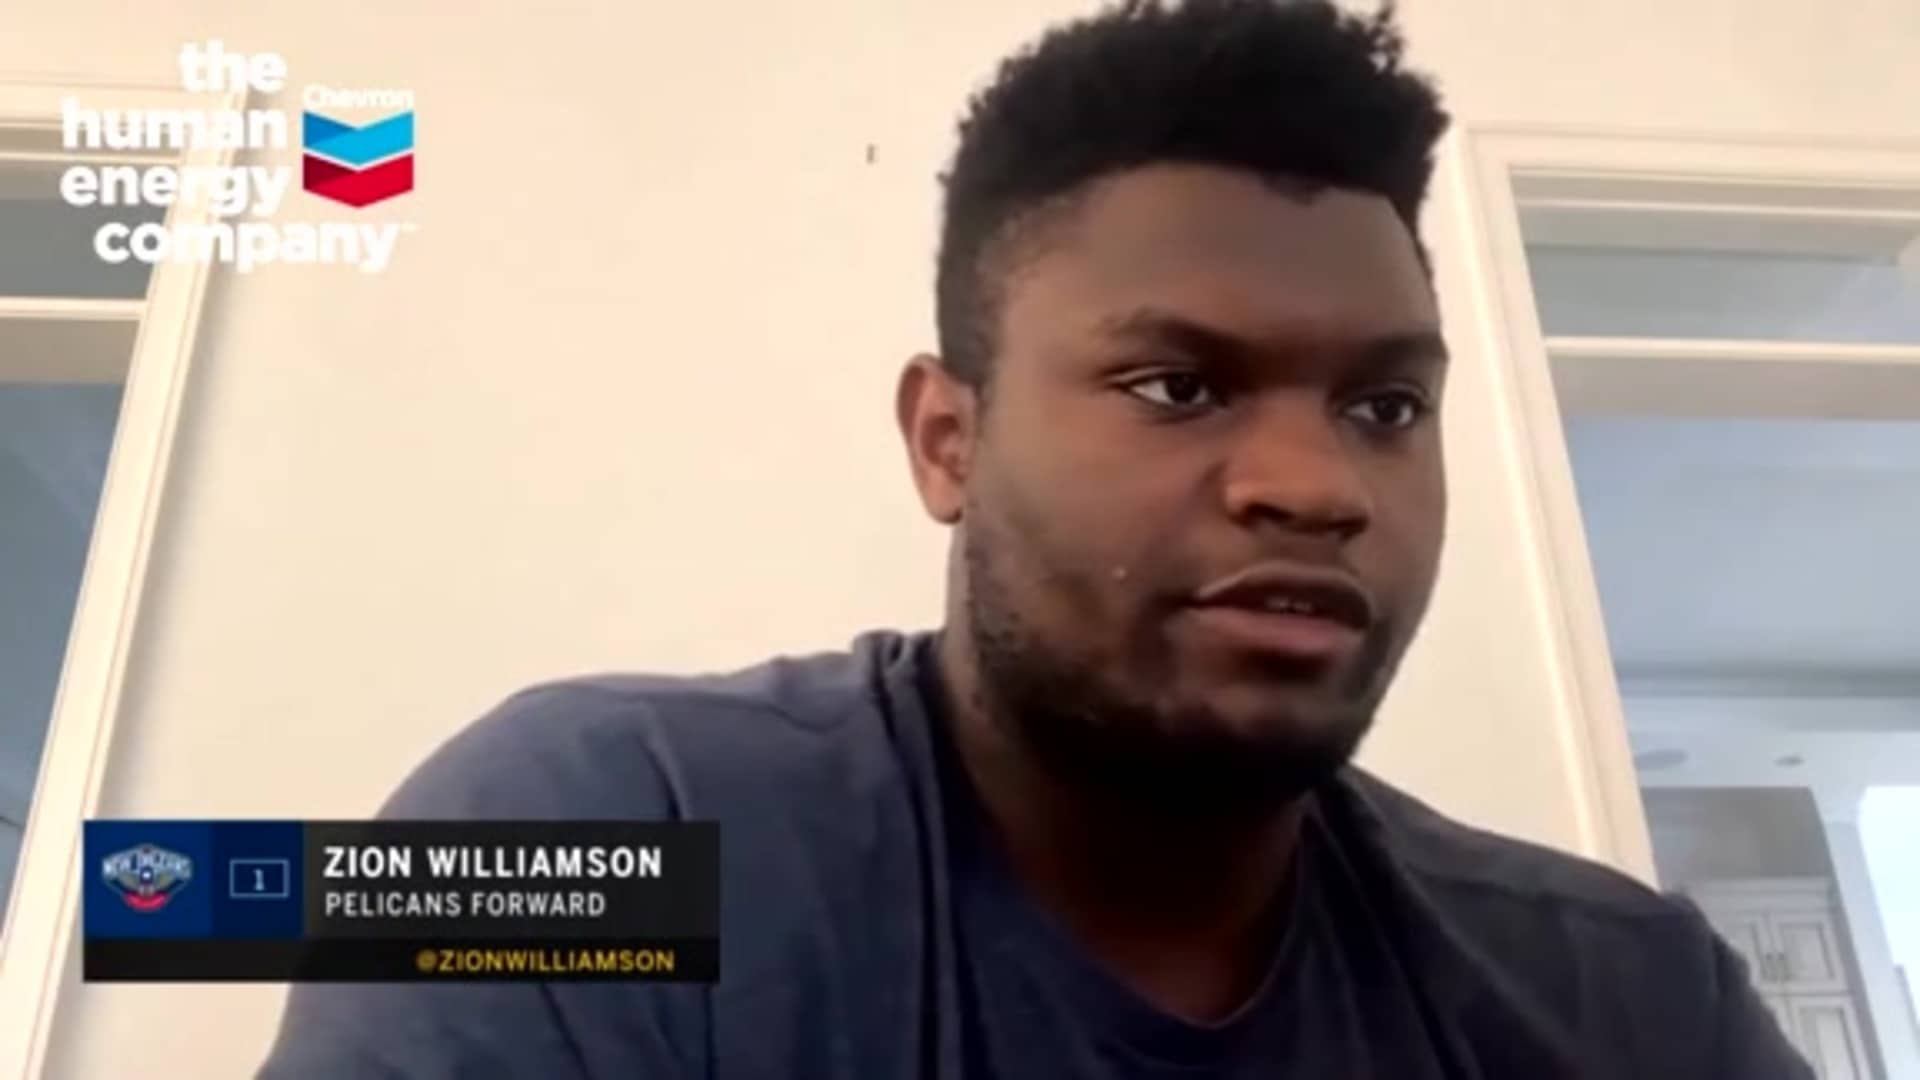 Zion Williamson analyzes Pelicans vs Heat highlights from 3/6/20